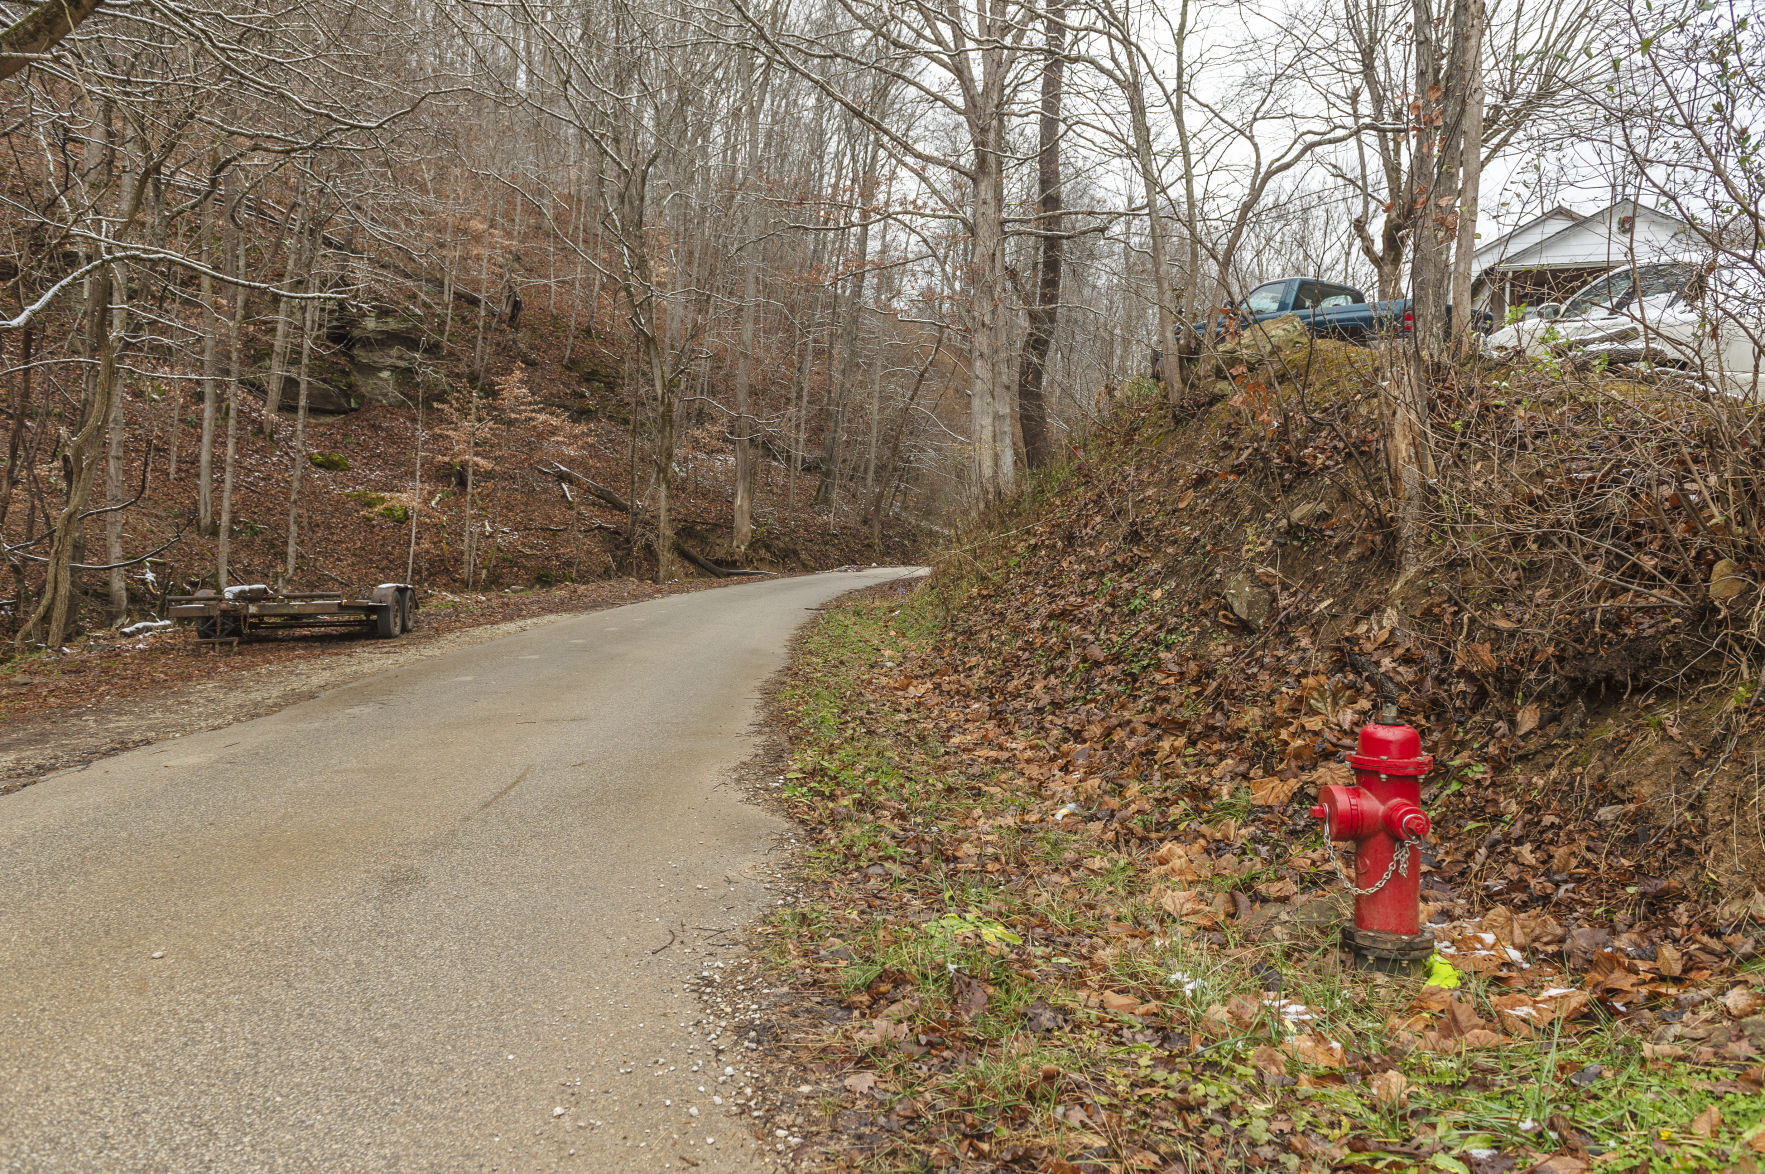 A fire hydrant off of Harless Fork Road in Branchland, Lincoln County, marks the end of Branchland-Midkiff Public Service District's water lines. Allen Adkins, who lives one tenth of a mile up from the hydrant, has been petitioning since 2013 to get water lines extended to his home.  (Photo by Craig Hudson | Gazette-Mail)